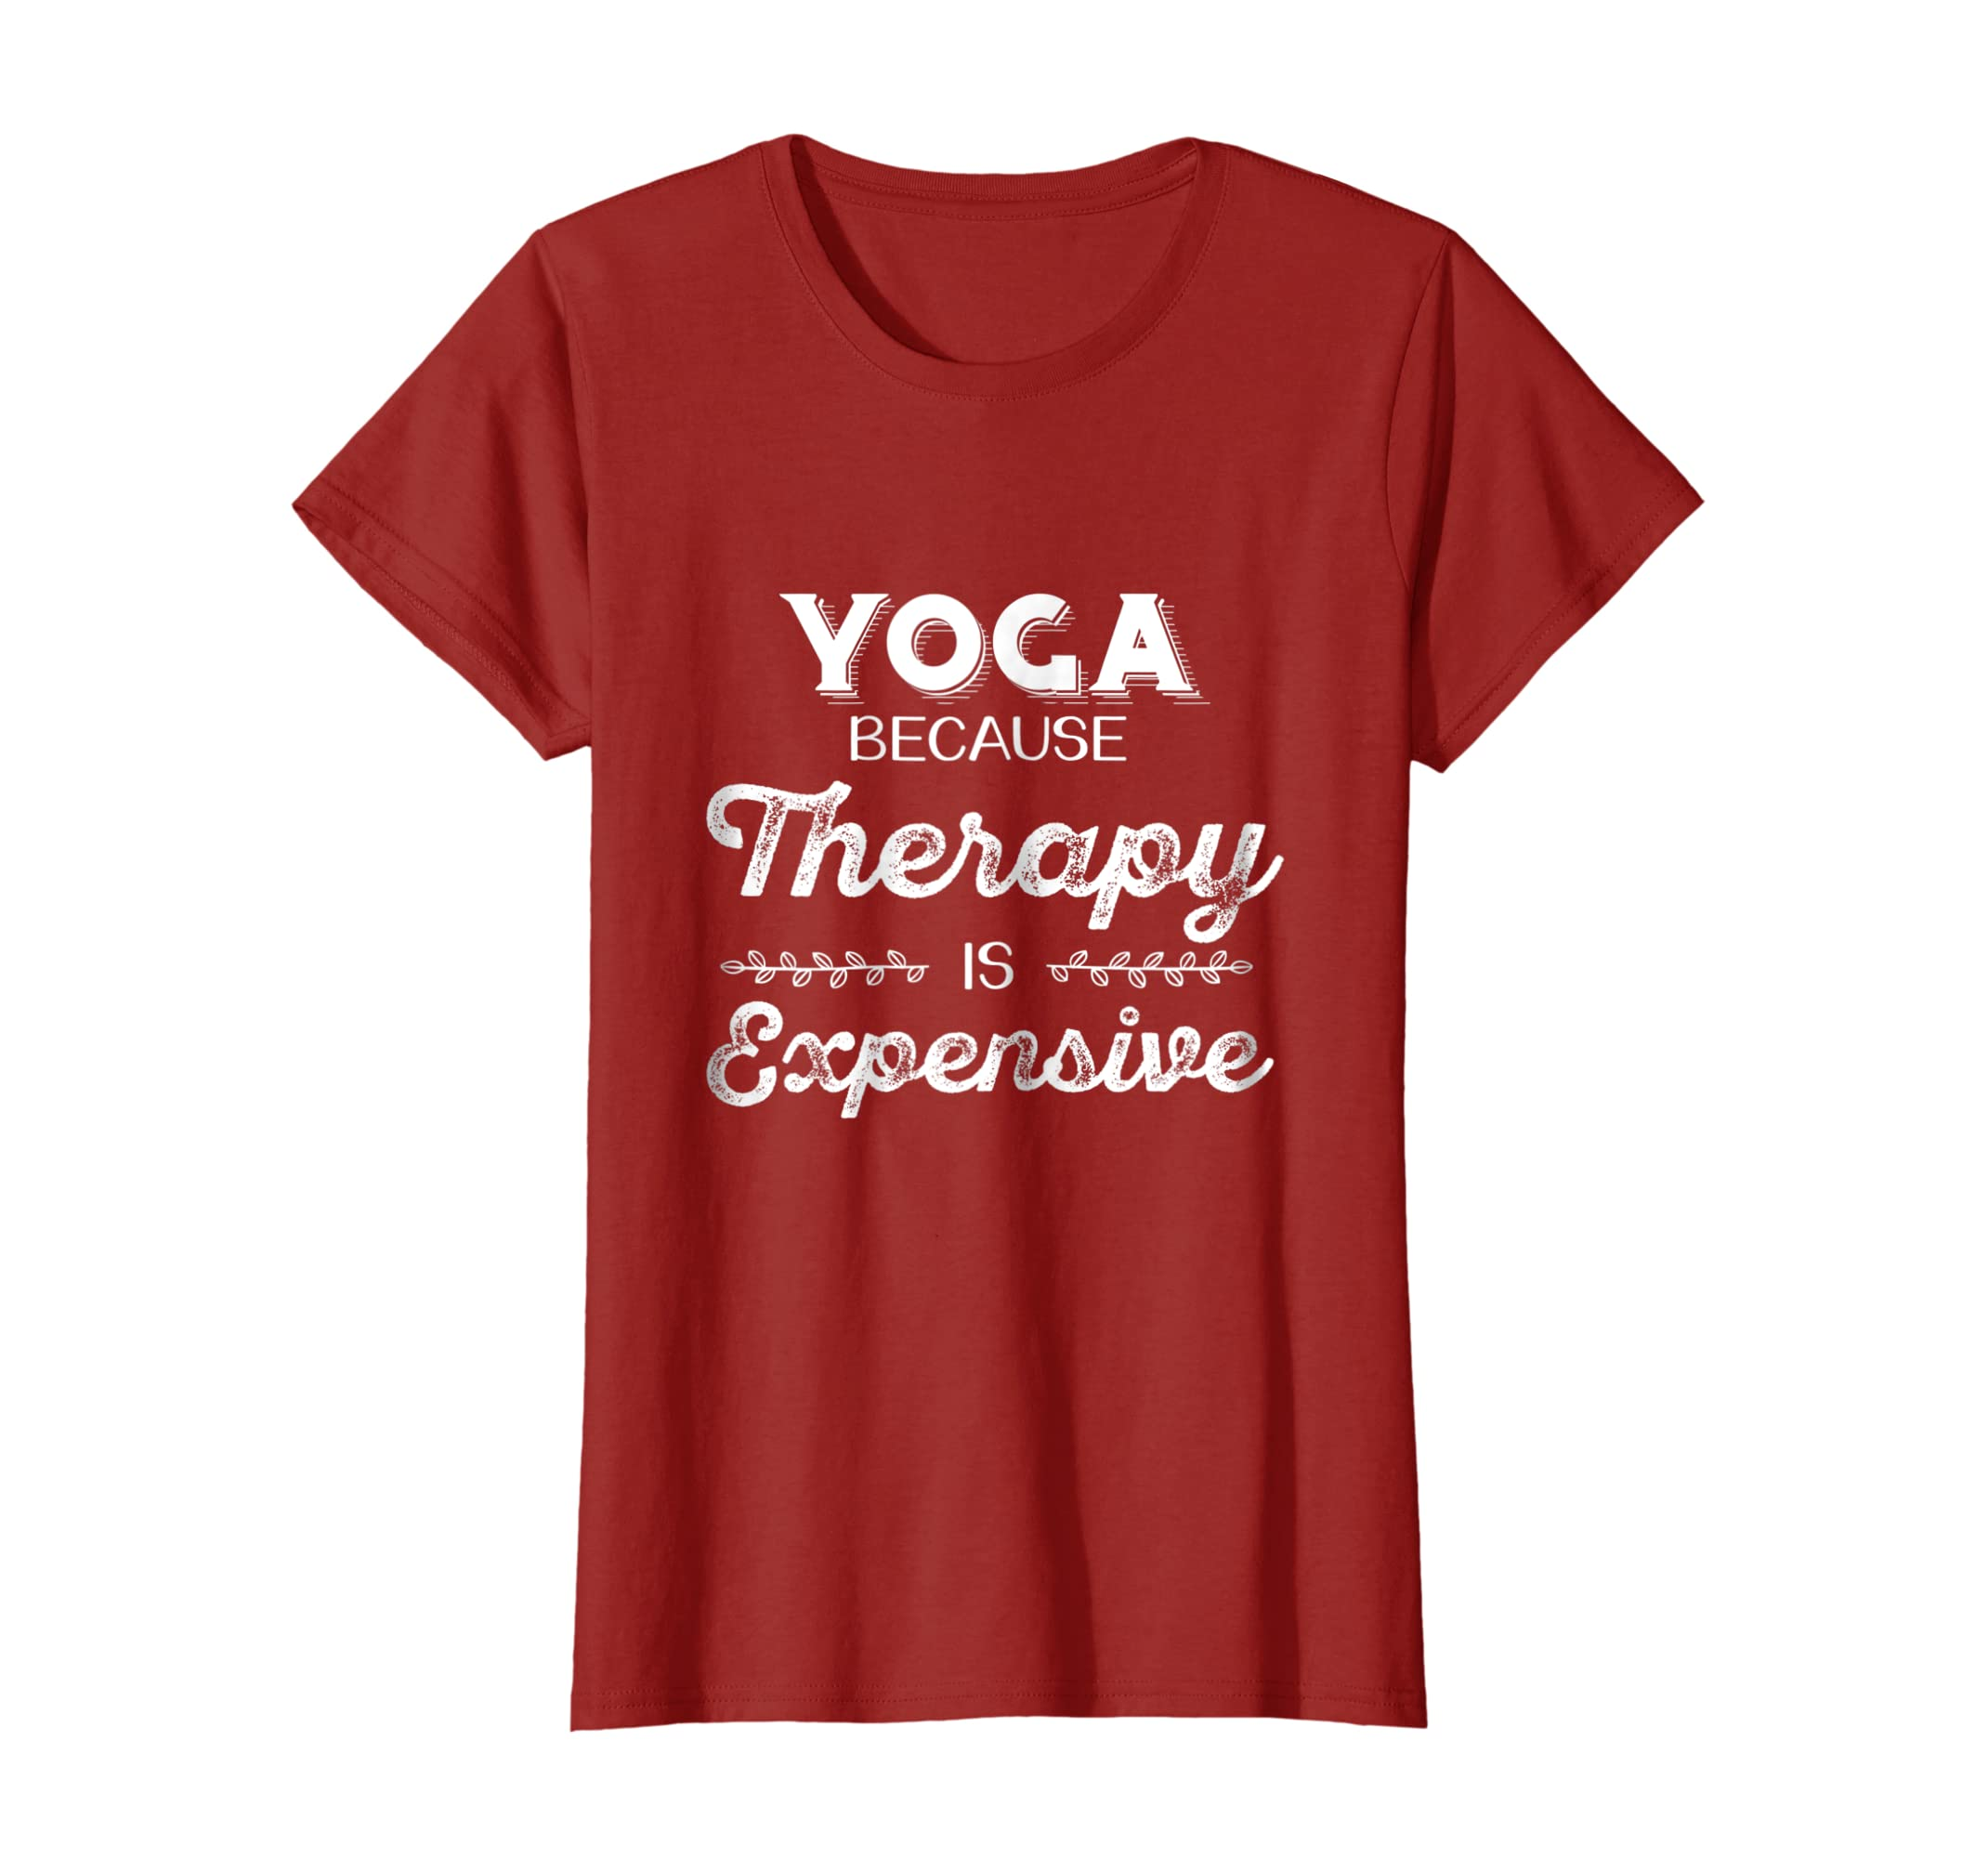 Amazon.com: Yoga T-Shirt Because Therapy Is Expensive: Clothing